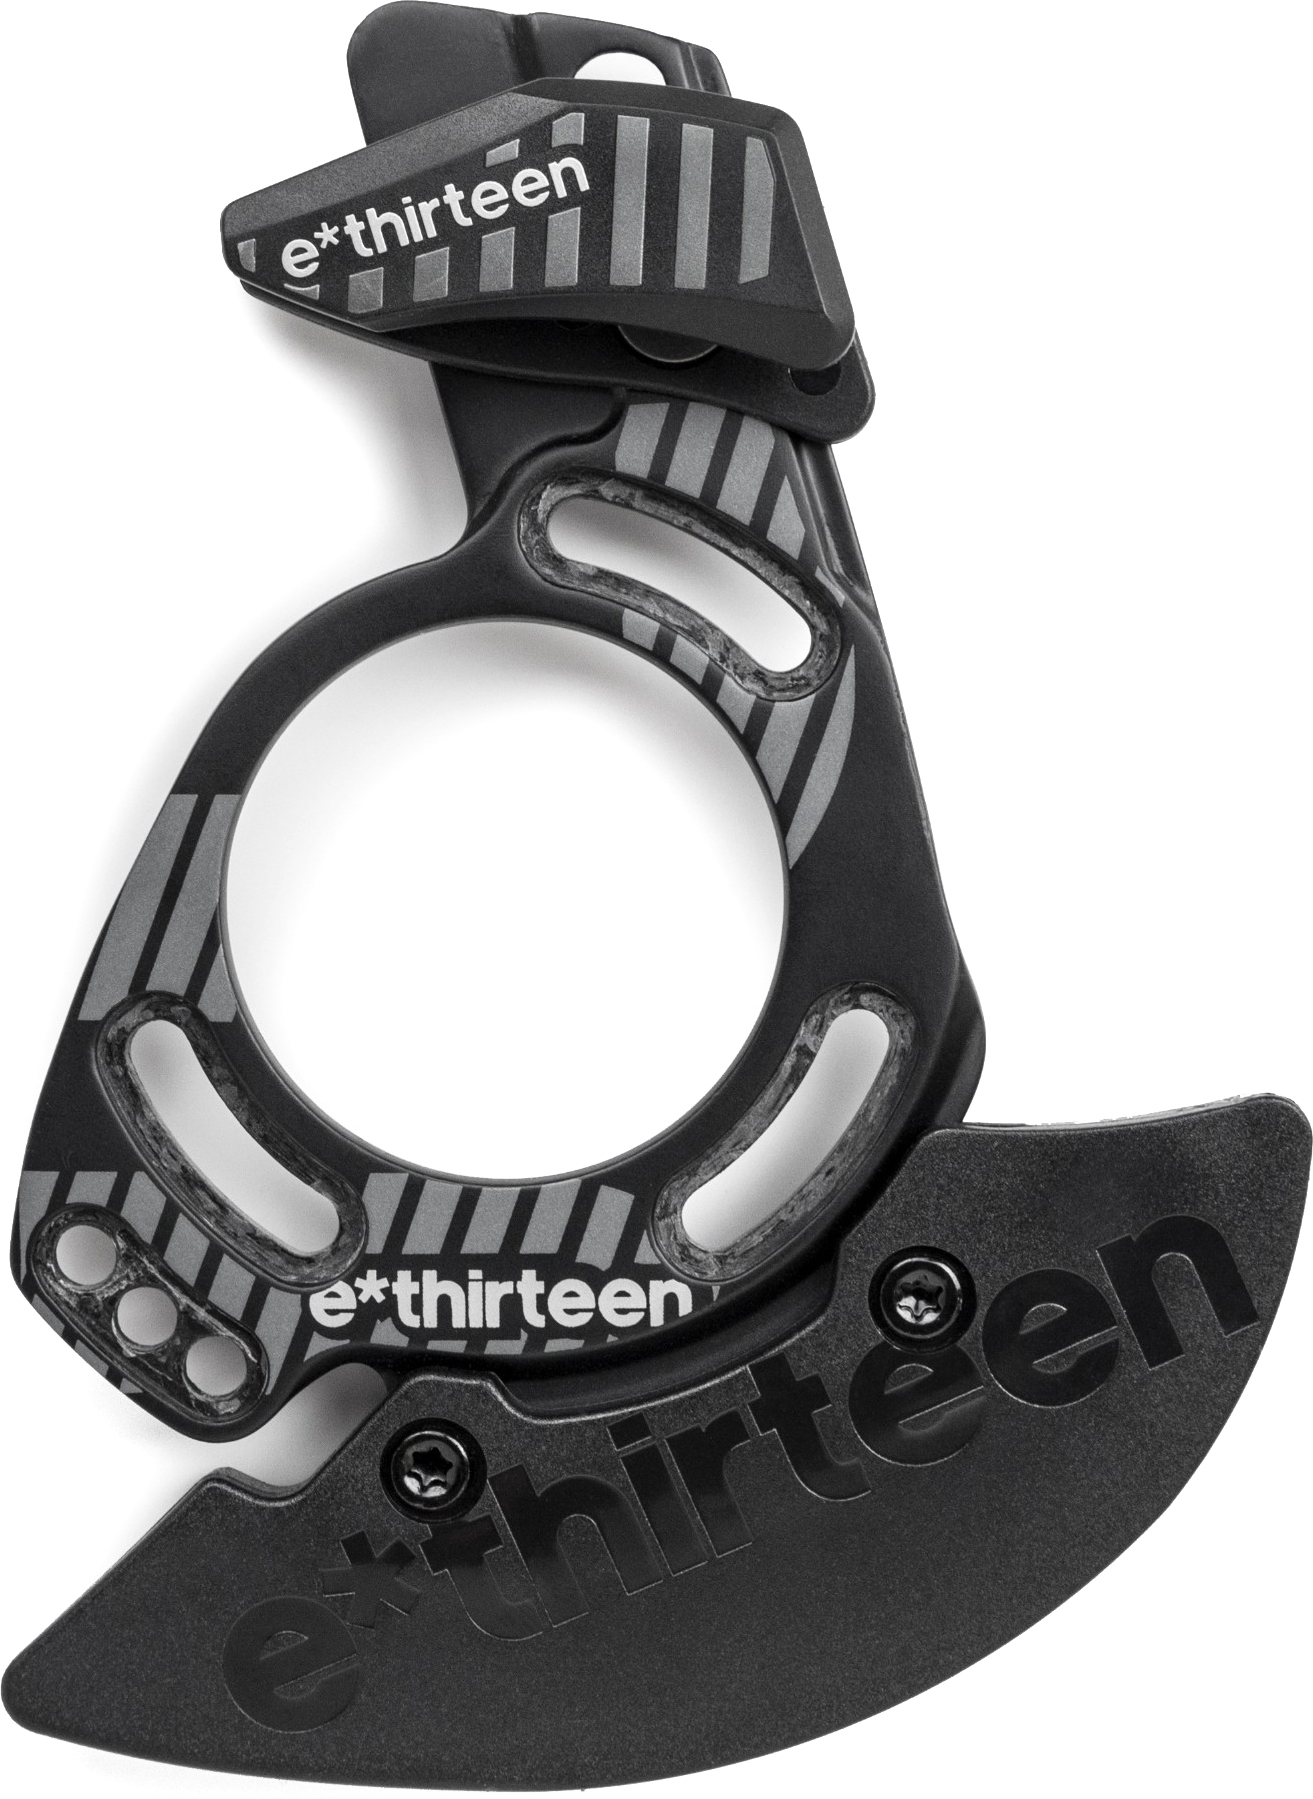 e.thirteen TRS Race Compact Chainguide | Misc. Gears and Transmission